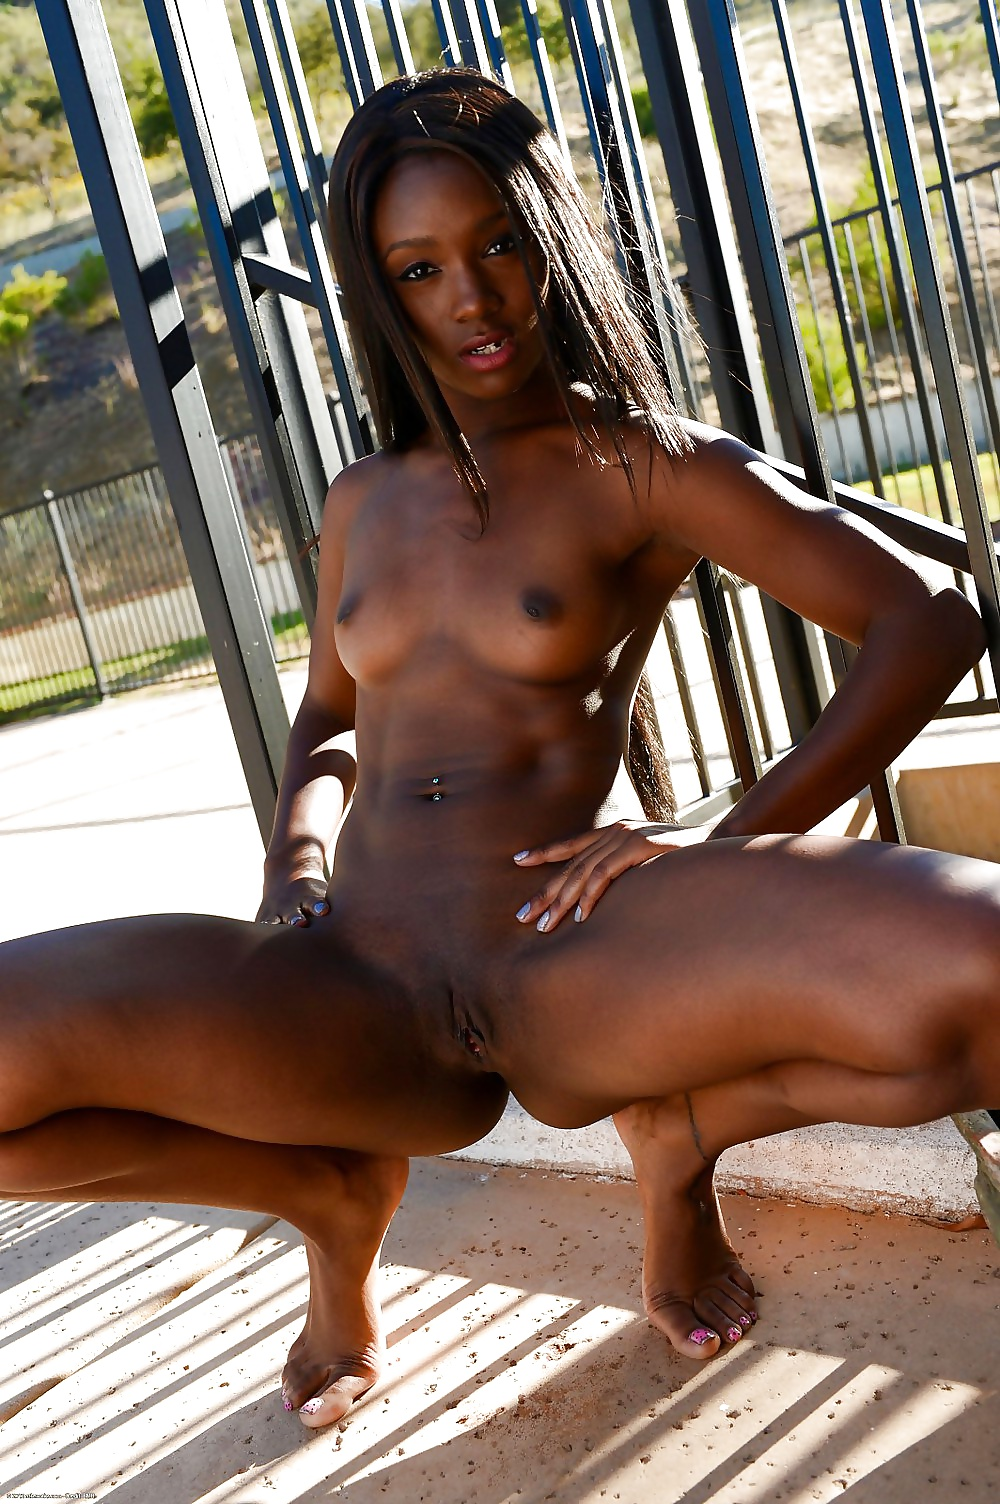 sexy-ebony-naked-women-videos-fat-pregnant-nude-women